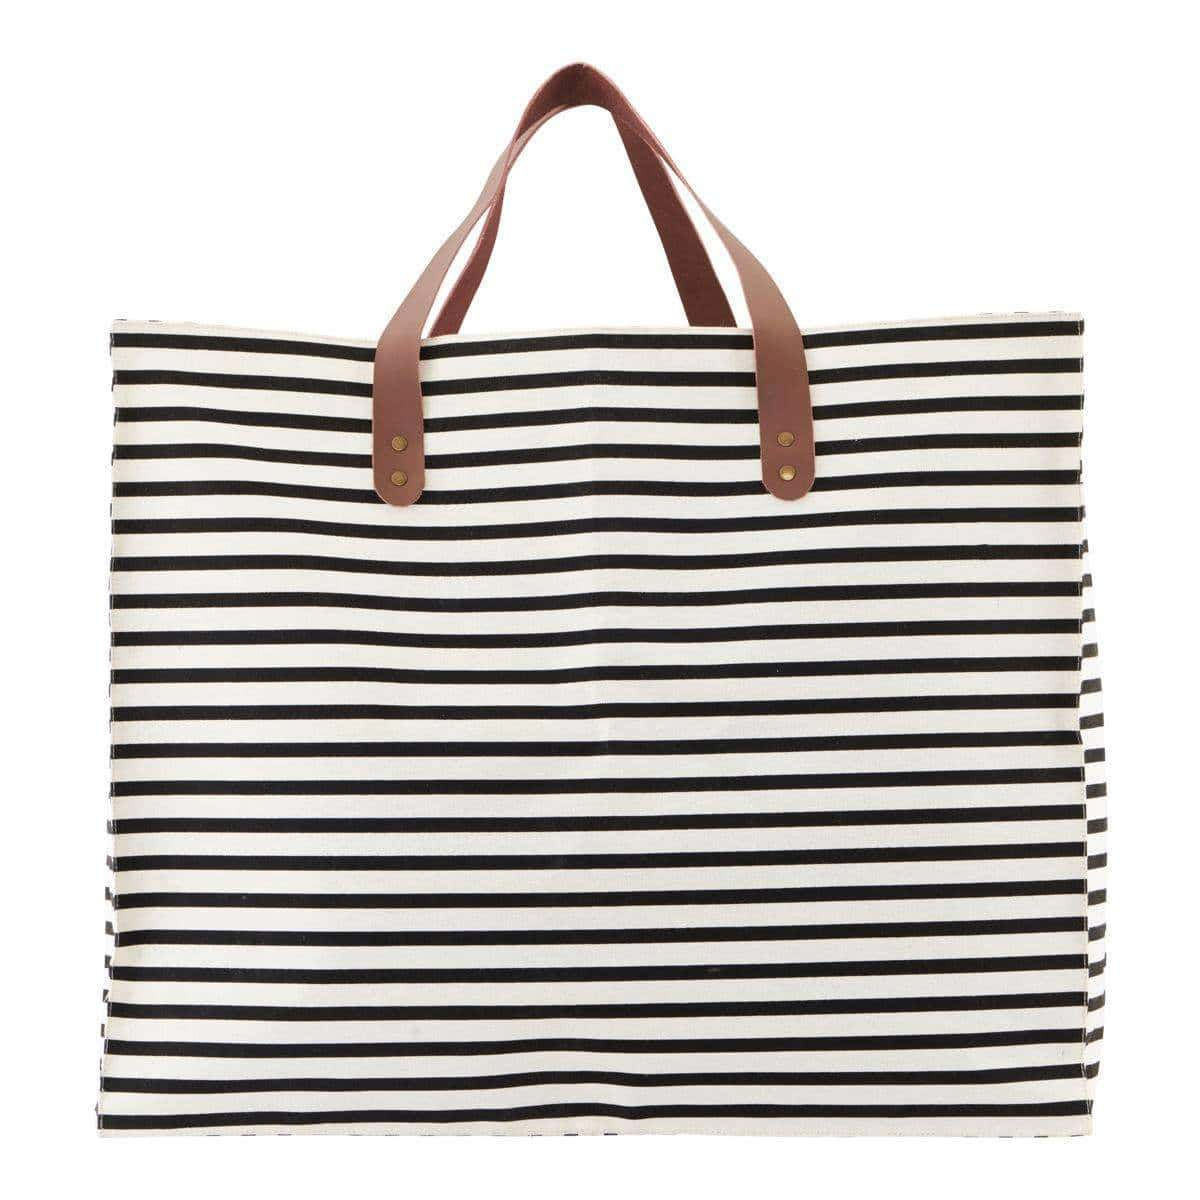 Society of Lifestyle Bag/storage, Stripes, Black/White